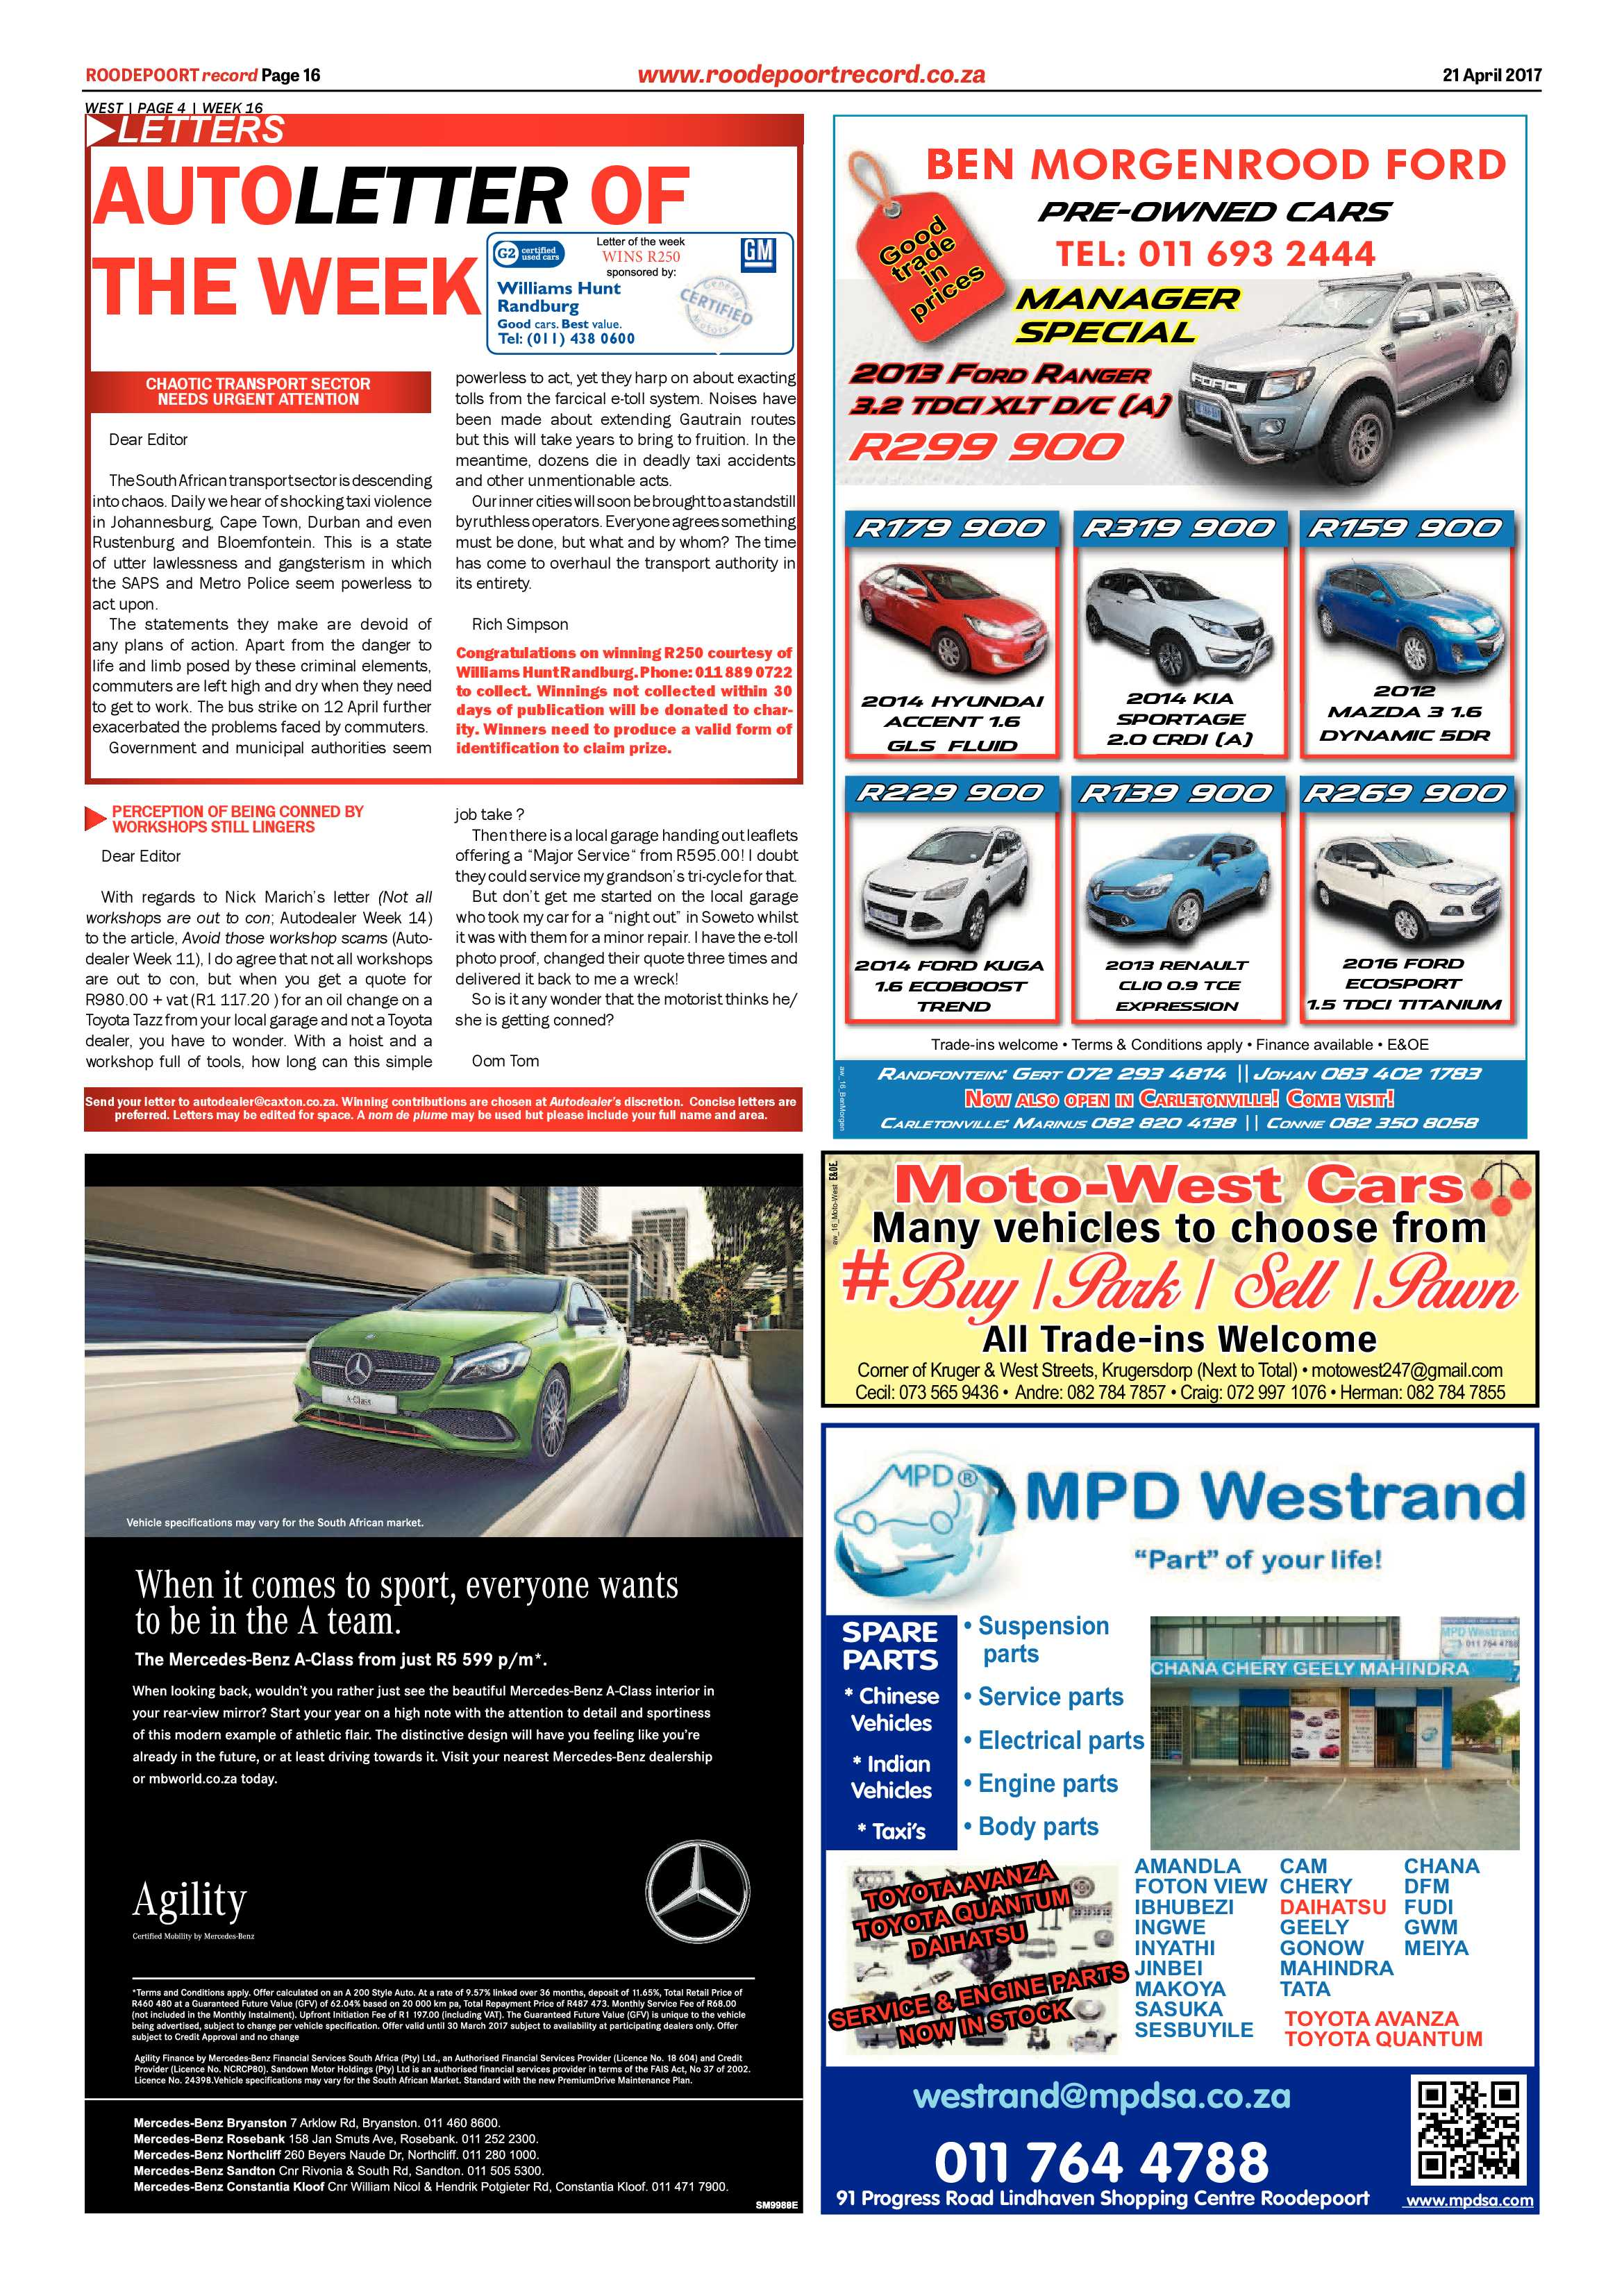 roodepoort-record-21-april-2017-epapers-page-16